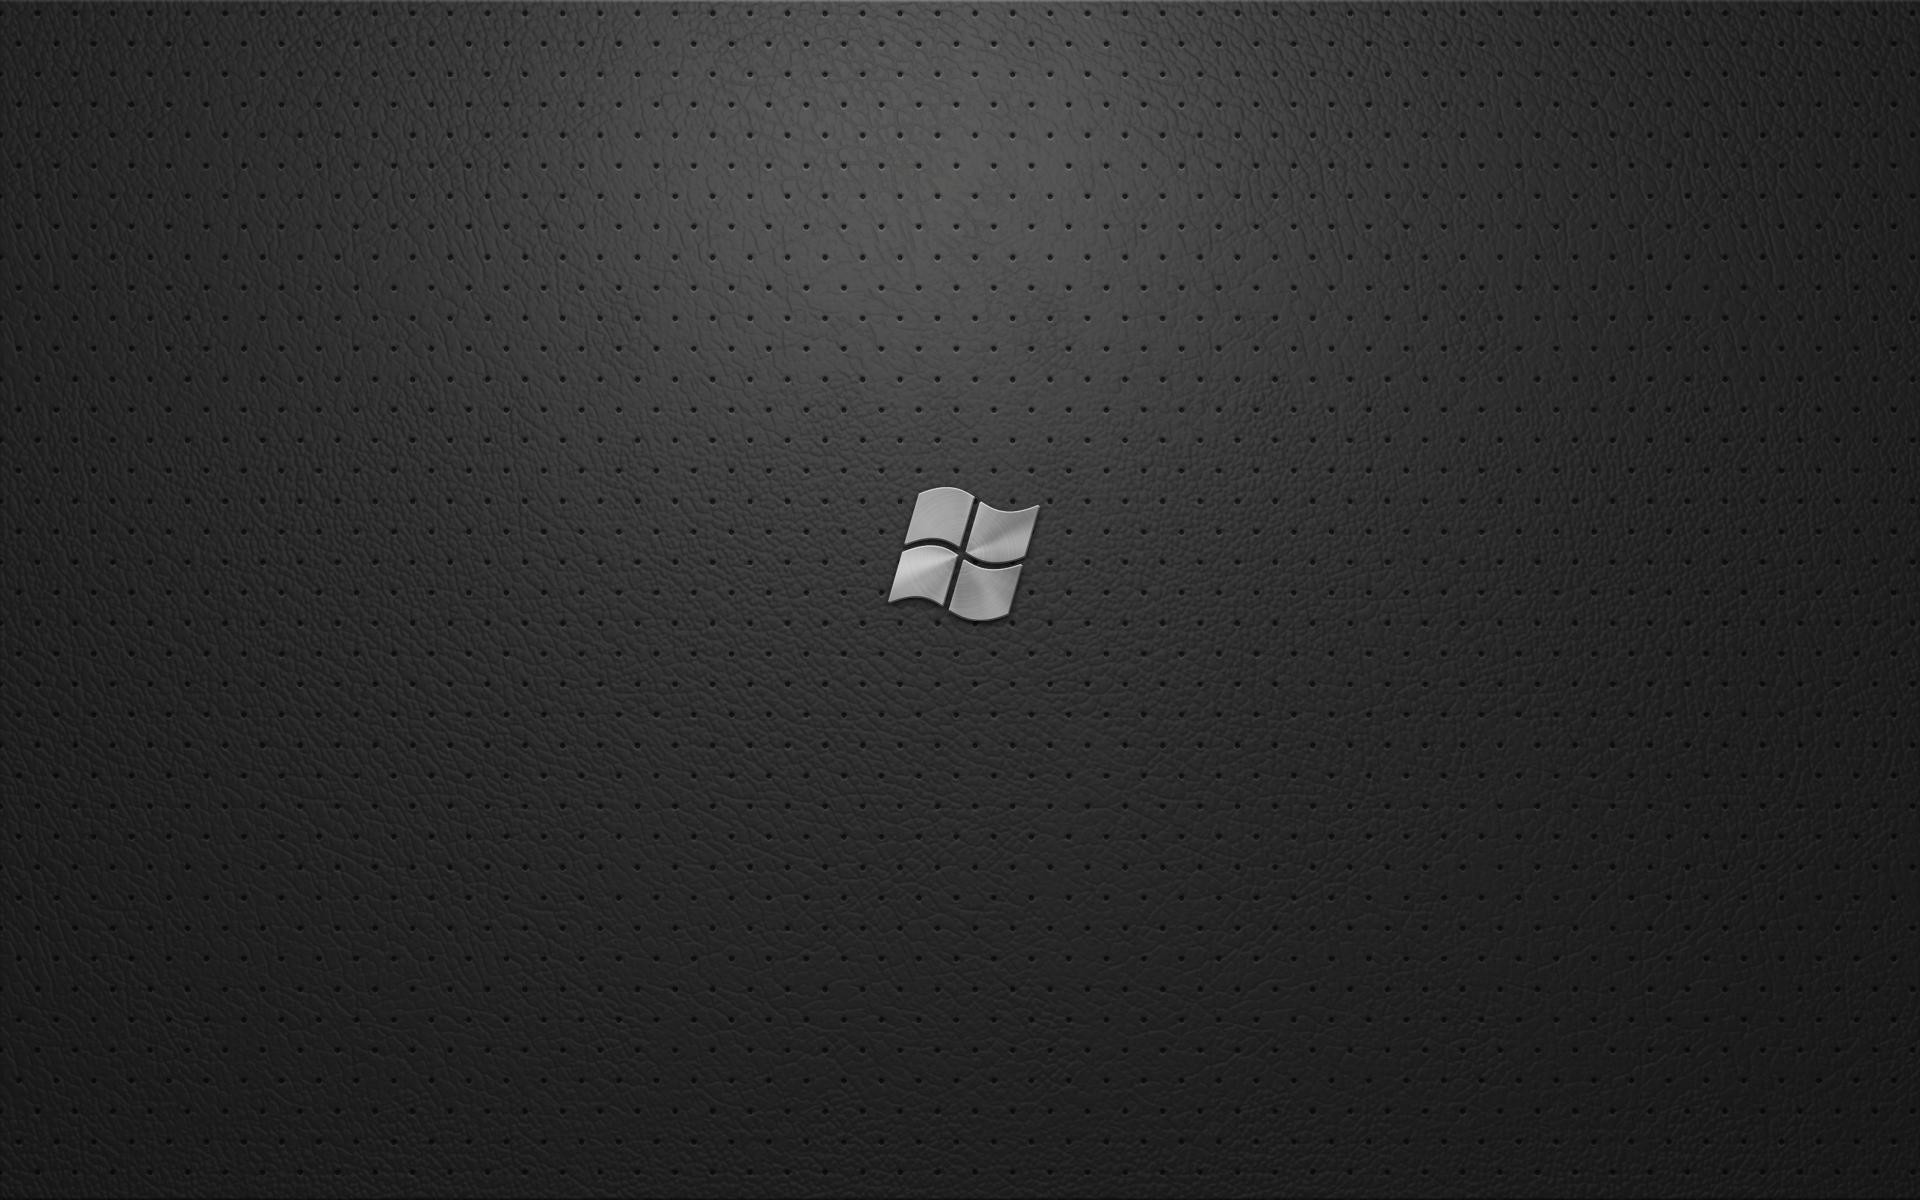 Windows 7 black background 69 images 1920x1200 windows 7 black high quality wallpaper hd wallpapers voltagebd Choice Image